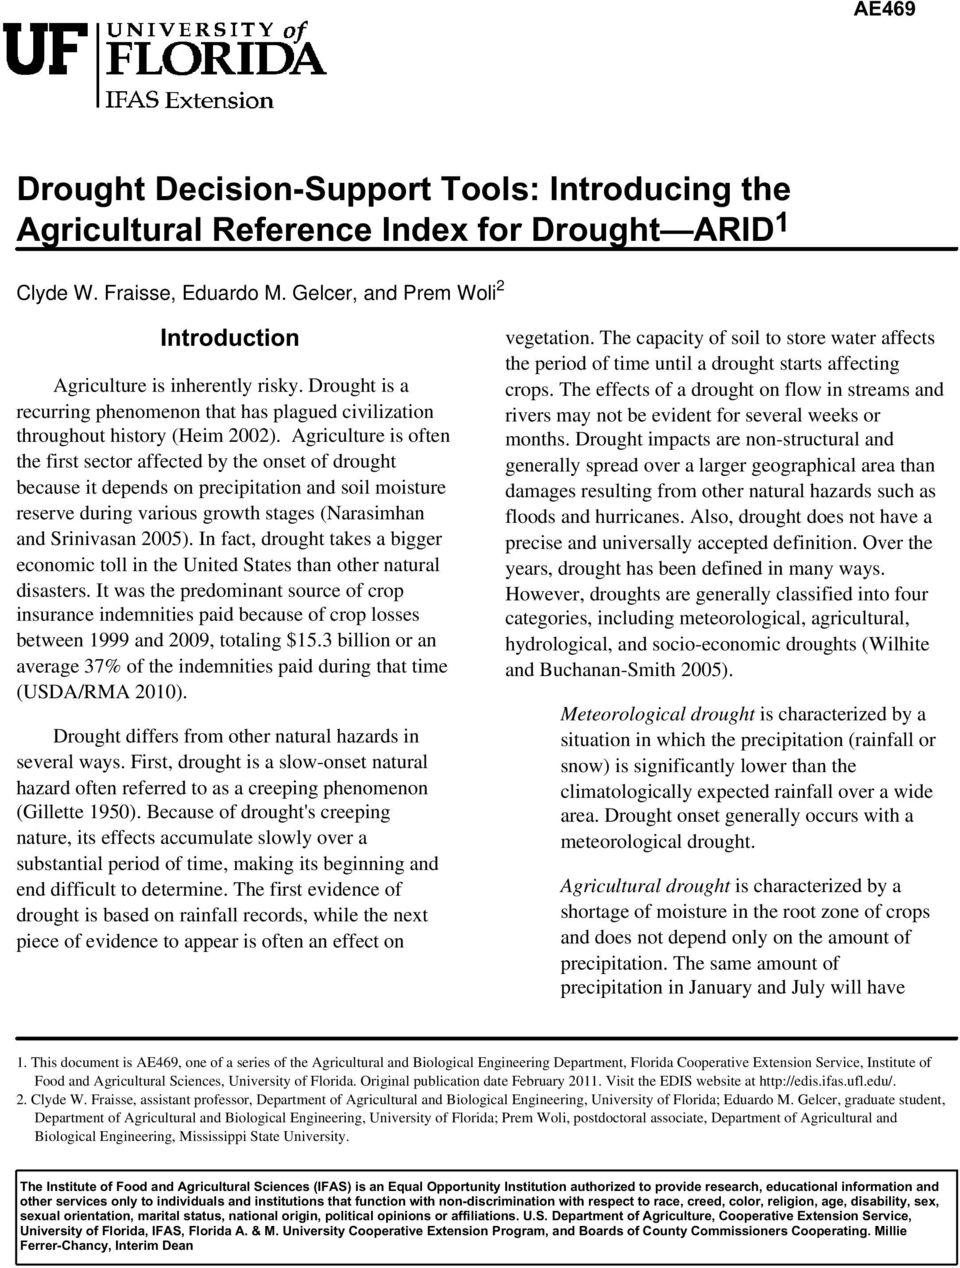 Agriculture is often the first sector affected by the onset of drought because it depends on precipitation and soil moisture reserve during various growth stages (Narasimhan and Srinivasan 2005).